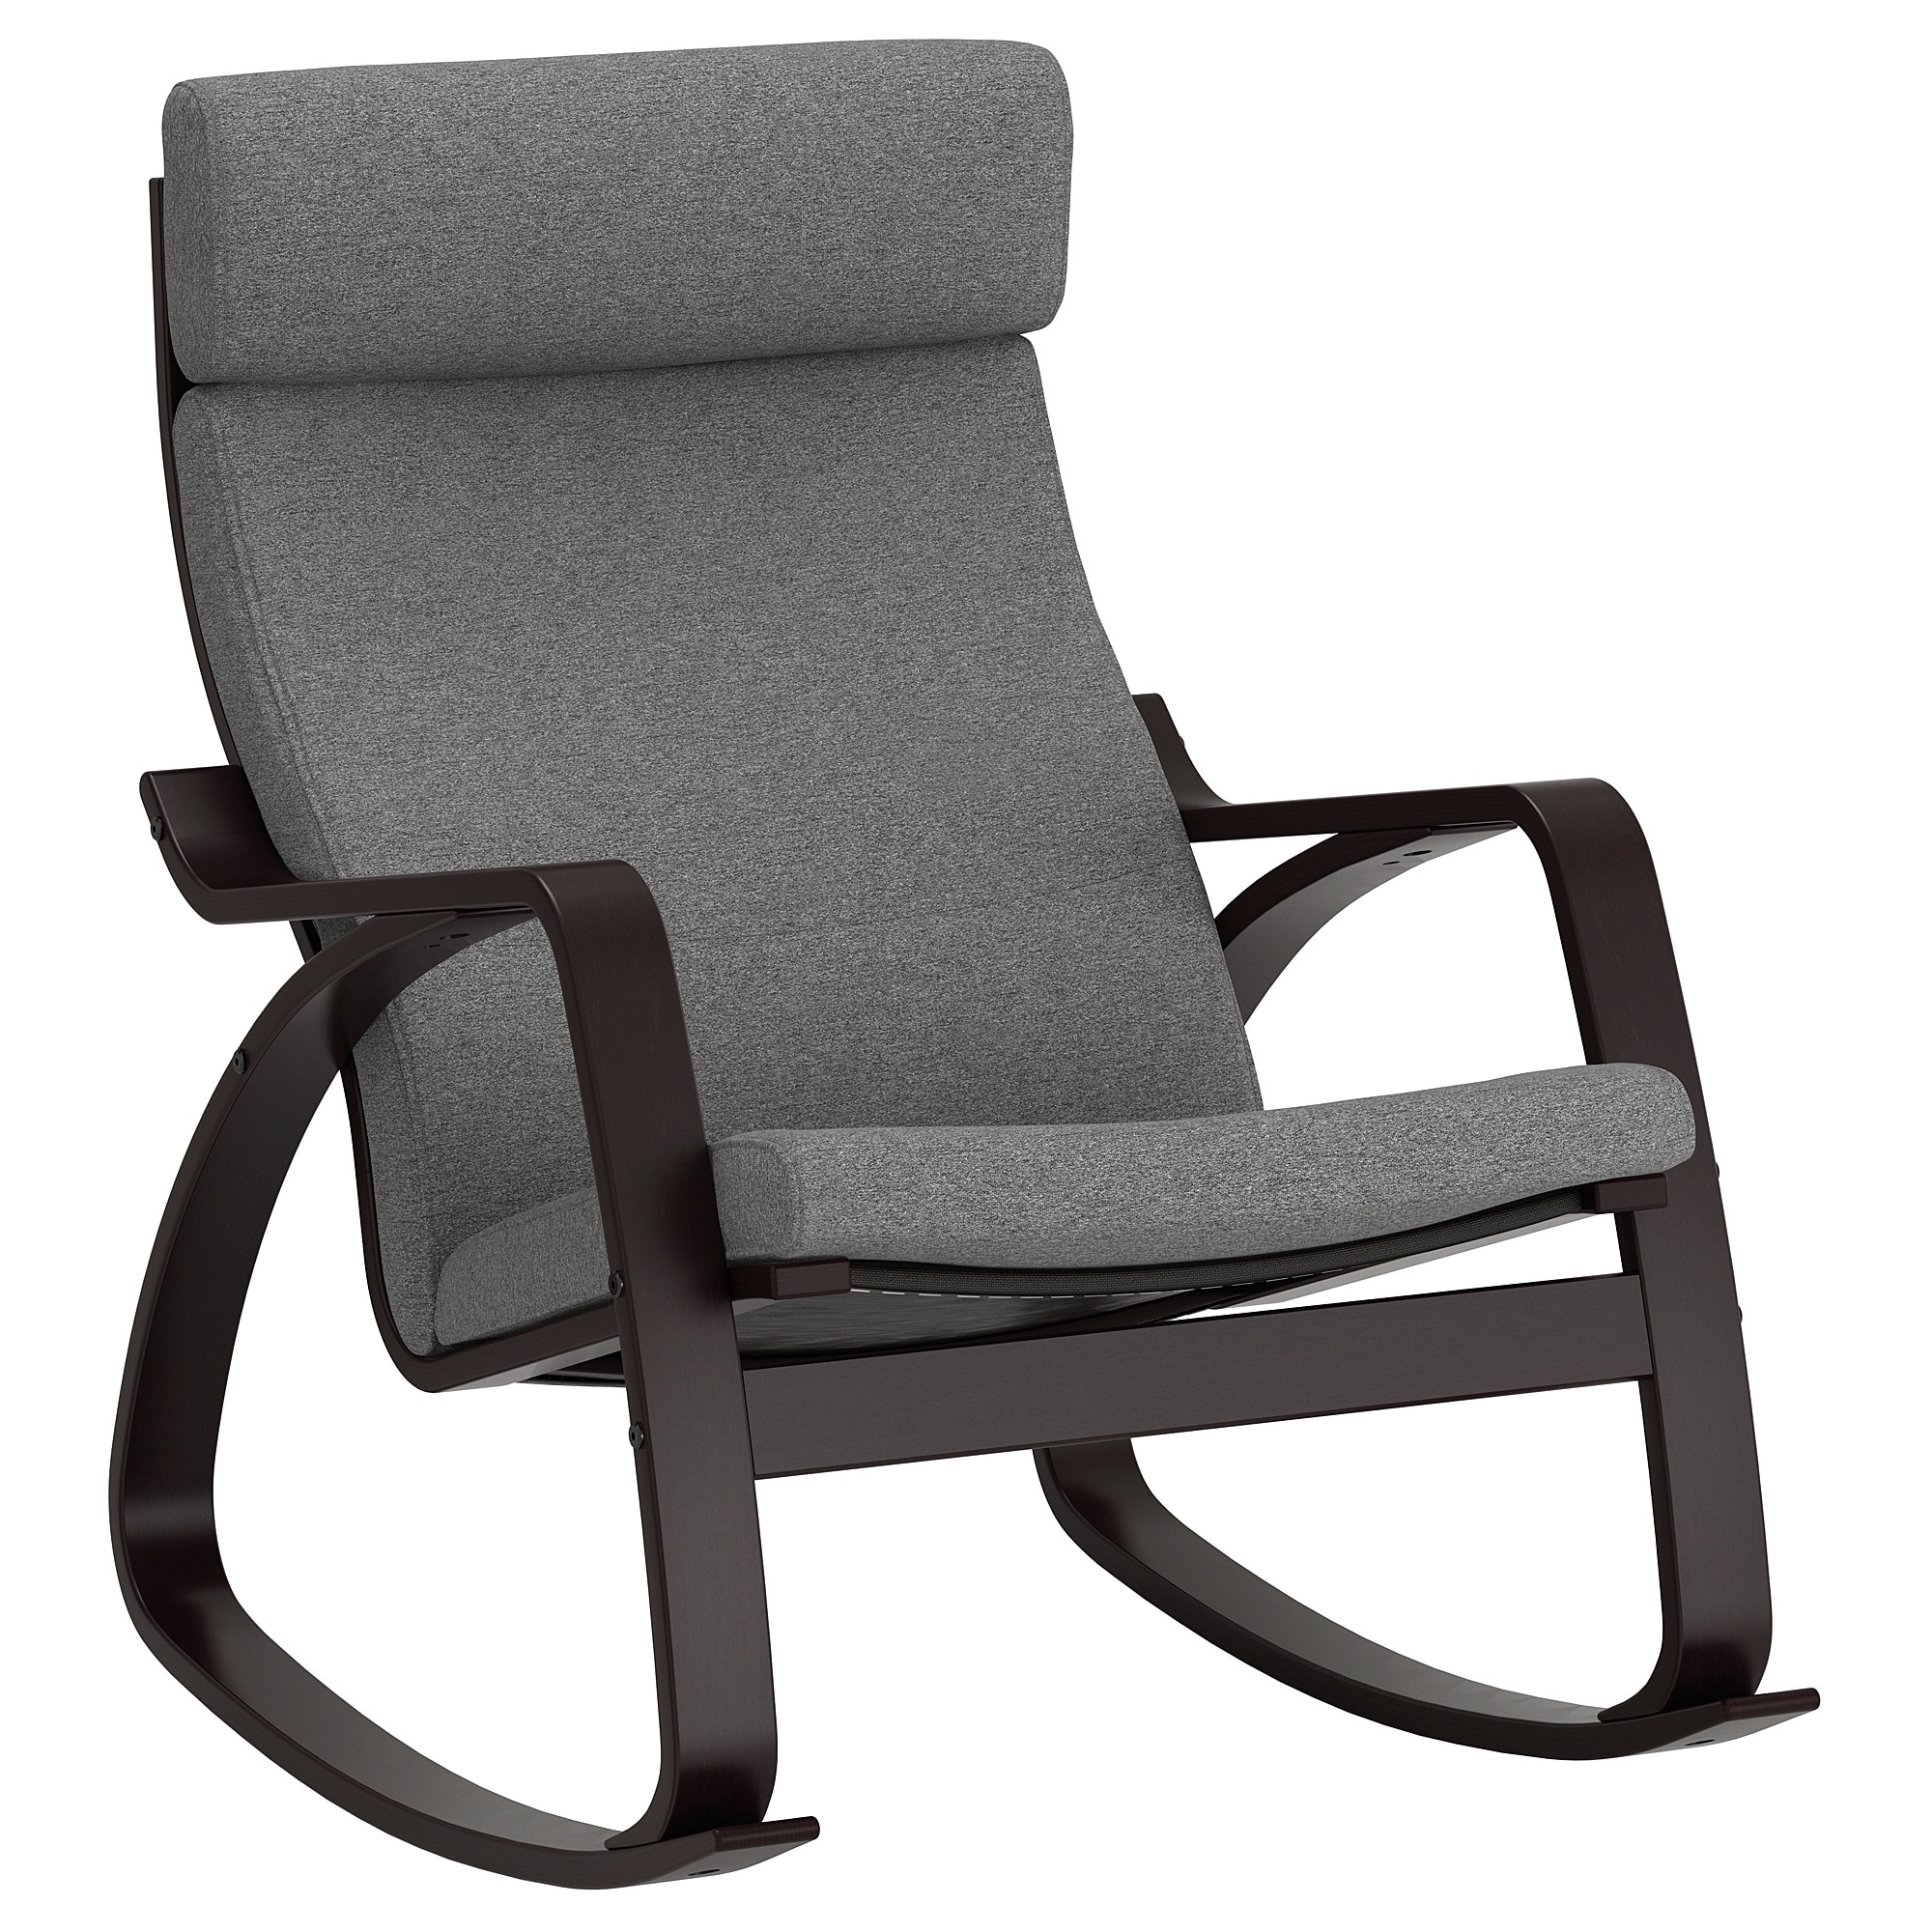 Most Recent Ikea Rocking Chairs Regarding Poäng Rocking Chair Black Brown/lysed Grey – Ikea (View 7 of 15)